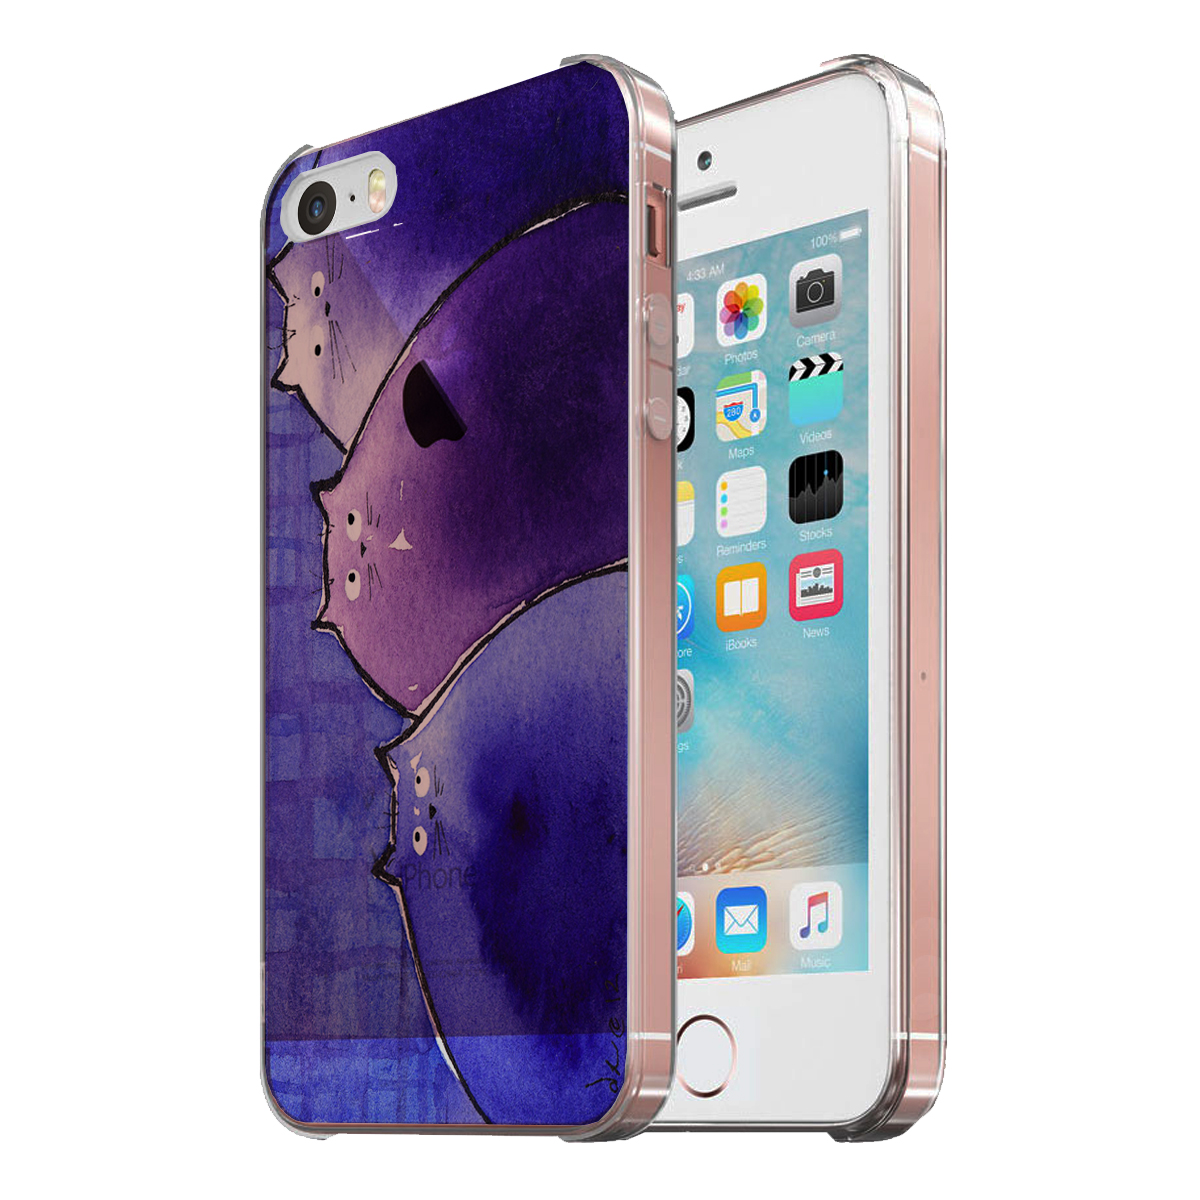 KuzmarK Clear Cover Case fits iPhone SE & iPhone 5 - Blue and Purple Chunky Kitties Abstract Cat Art by Denise Every